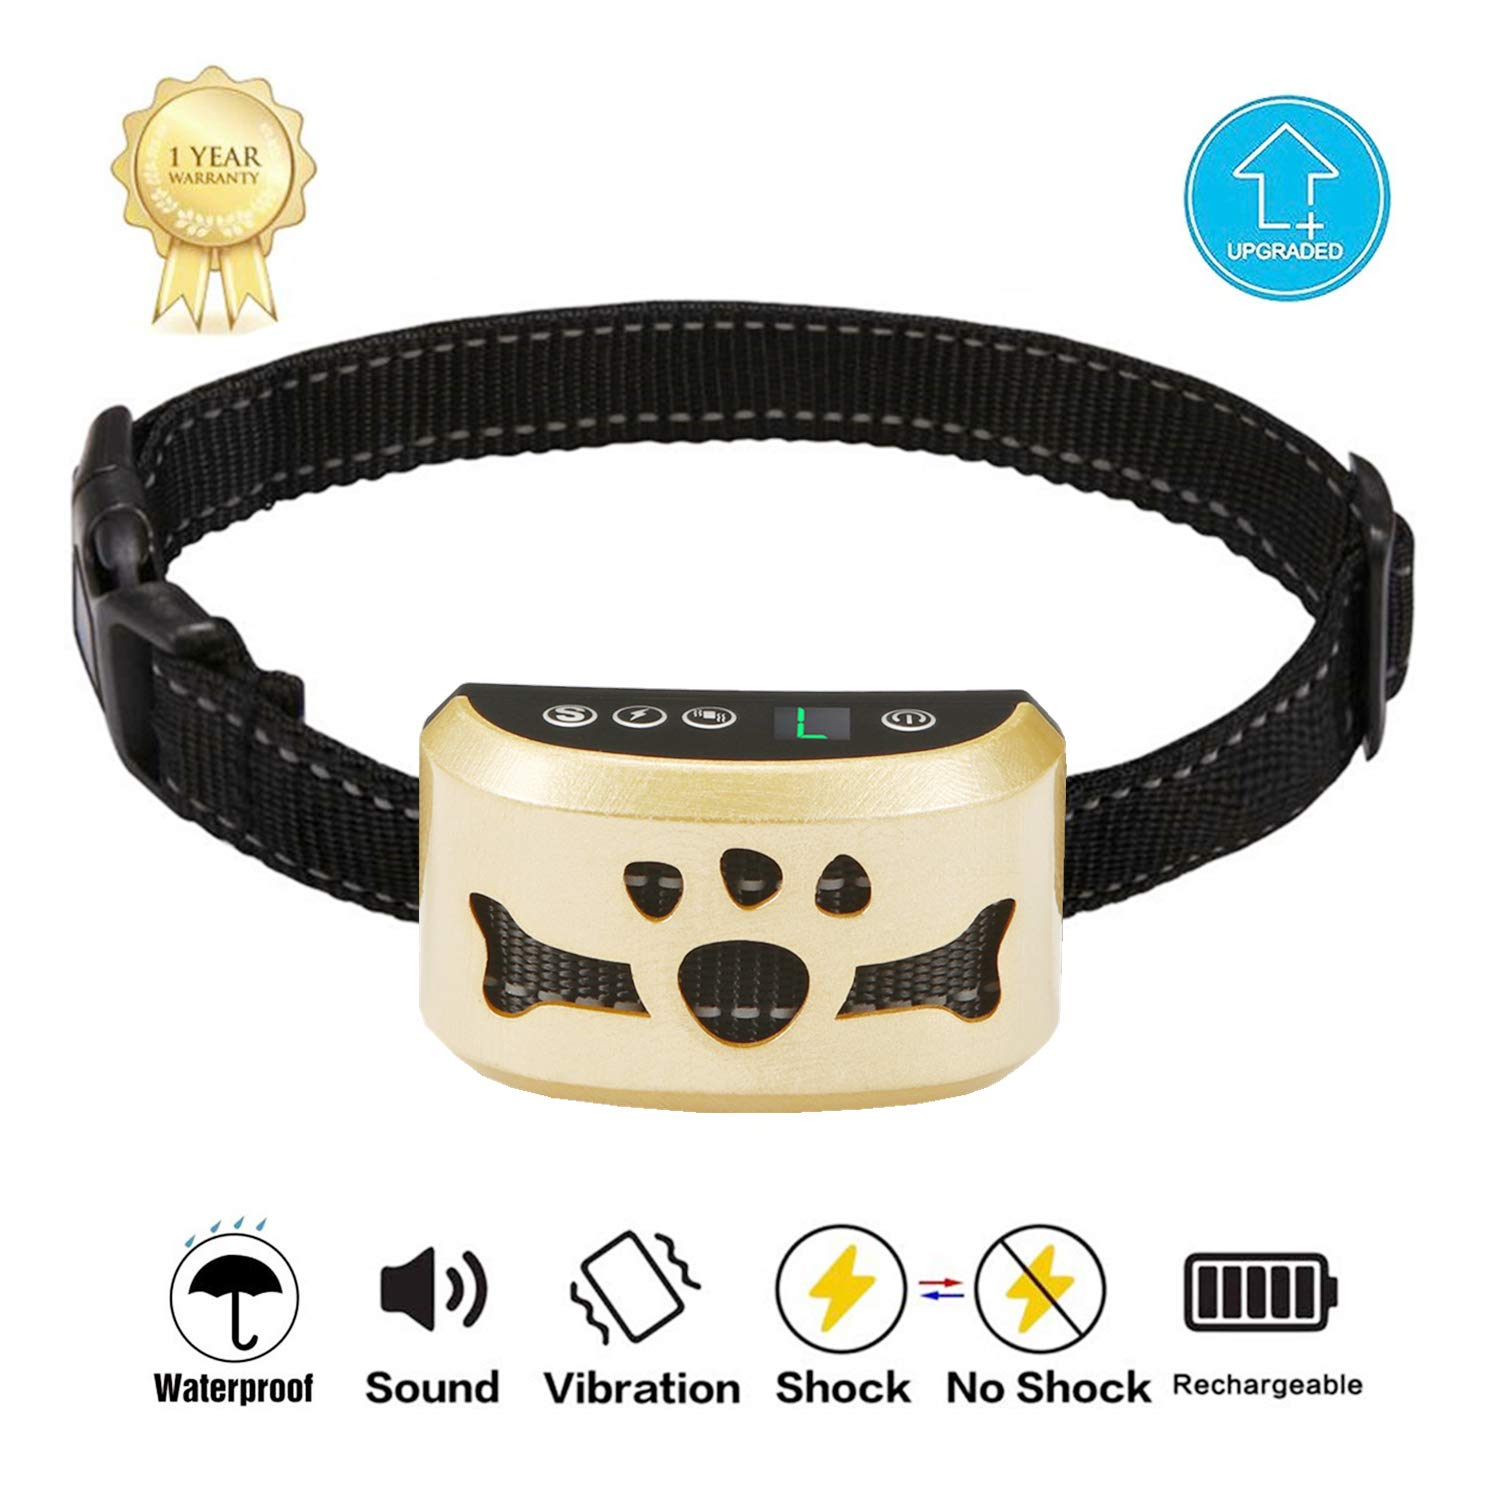 TOTIE Dog Bark Collar -7 Adjustable Sensitivity and Intensity Levels-Dual Anti-Barking Modes Rechargeable/Rainproof/Reflective -No Barking Control Dog Shock Collar for Small Medium Lar (Gold) by TOTIE